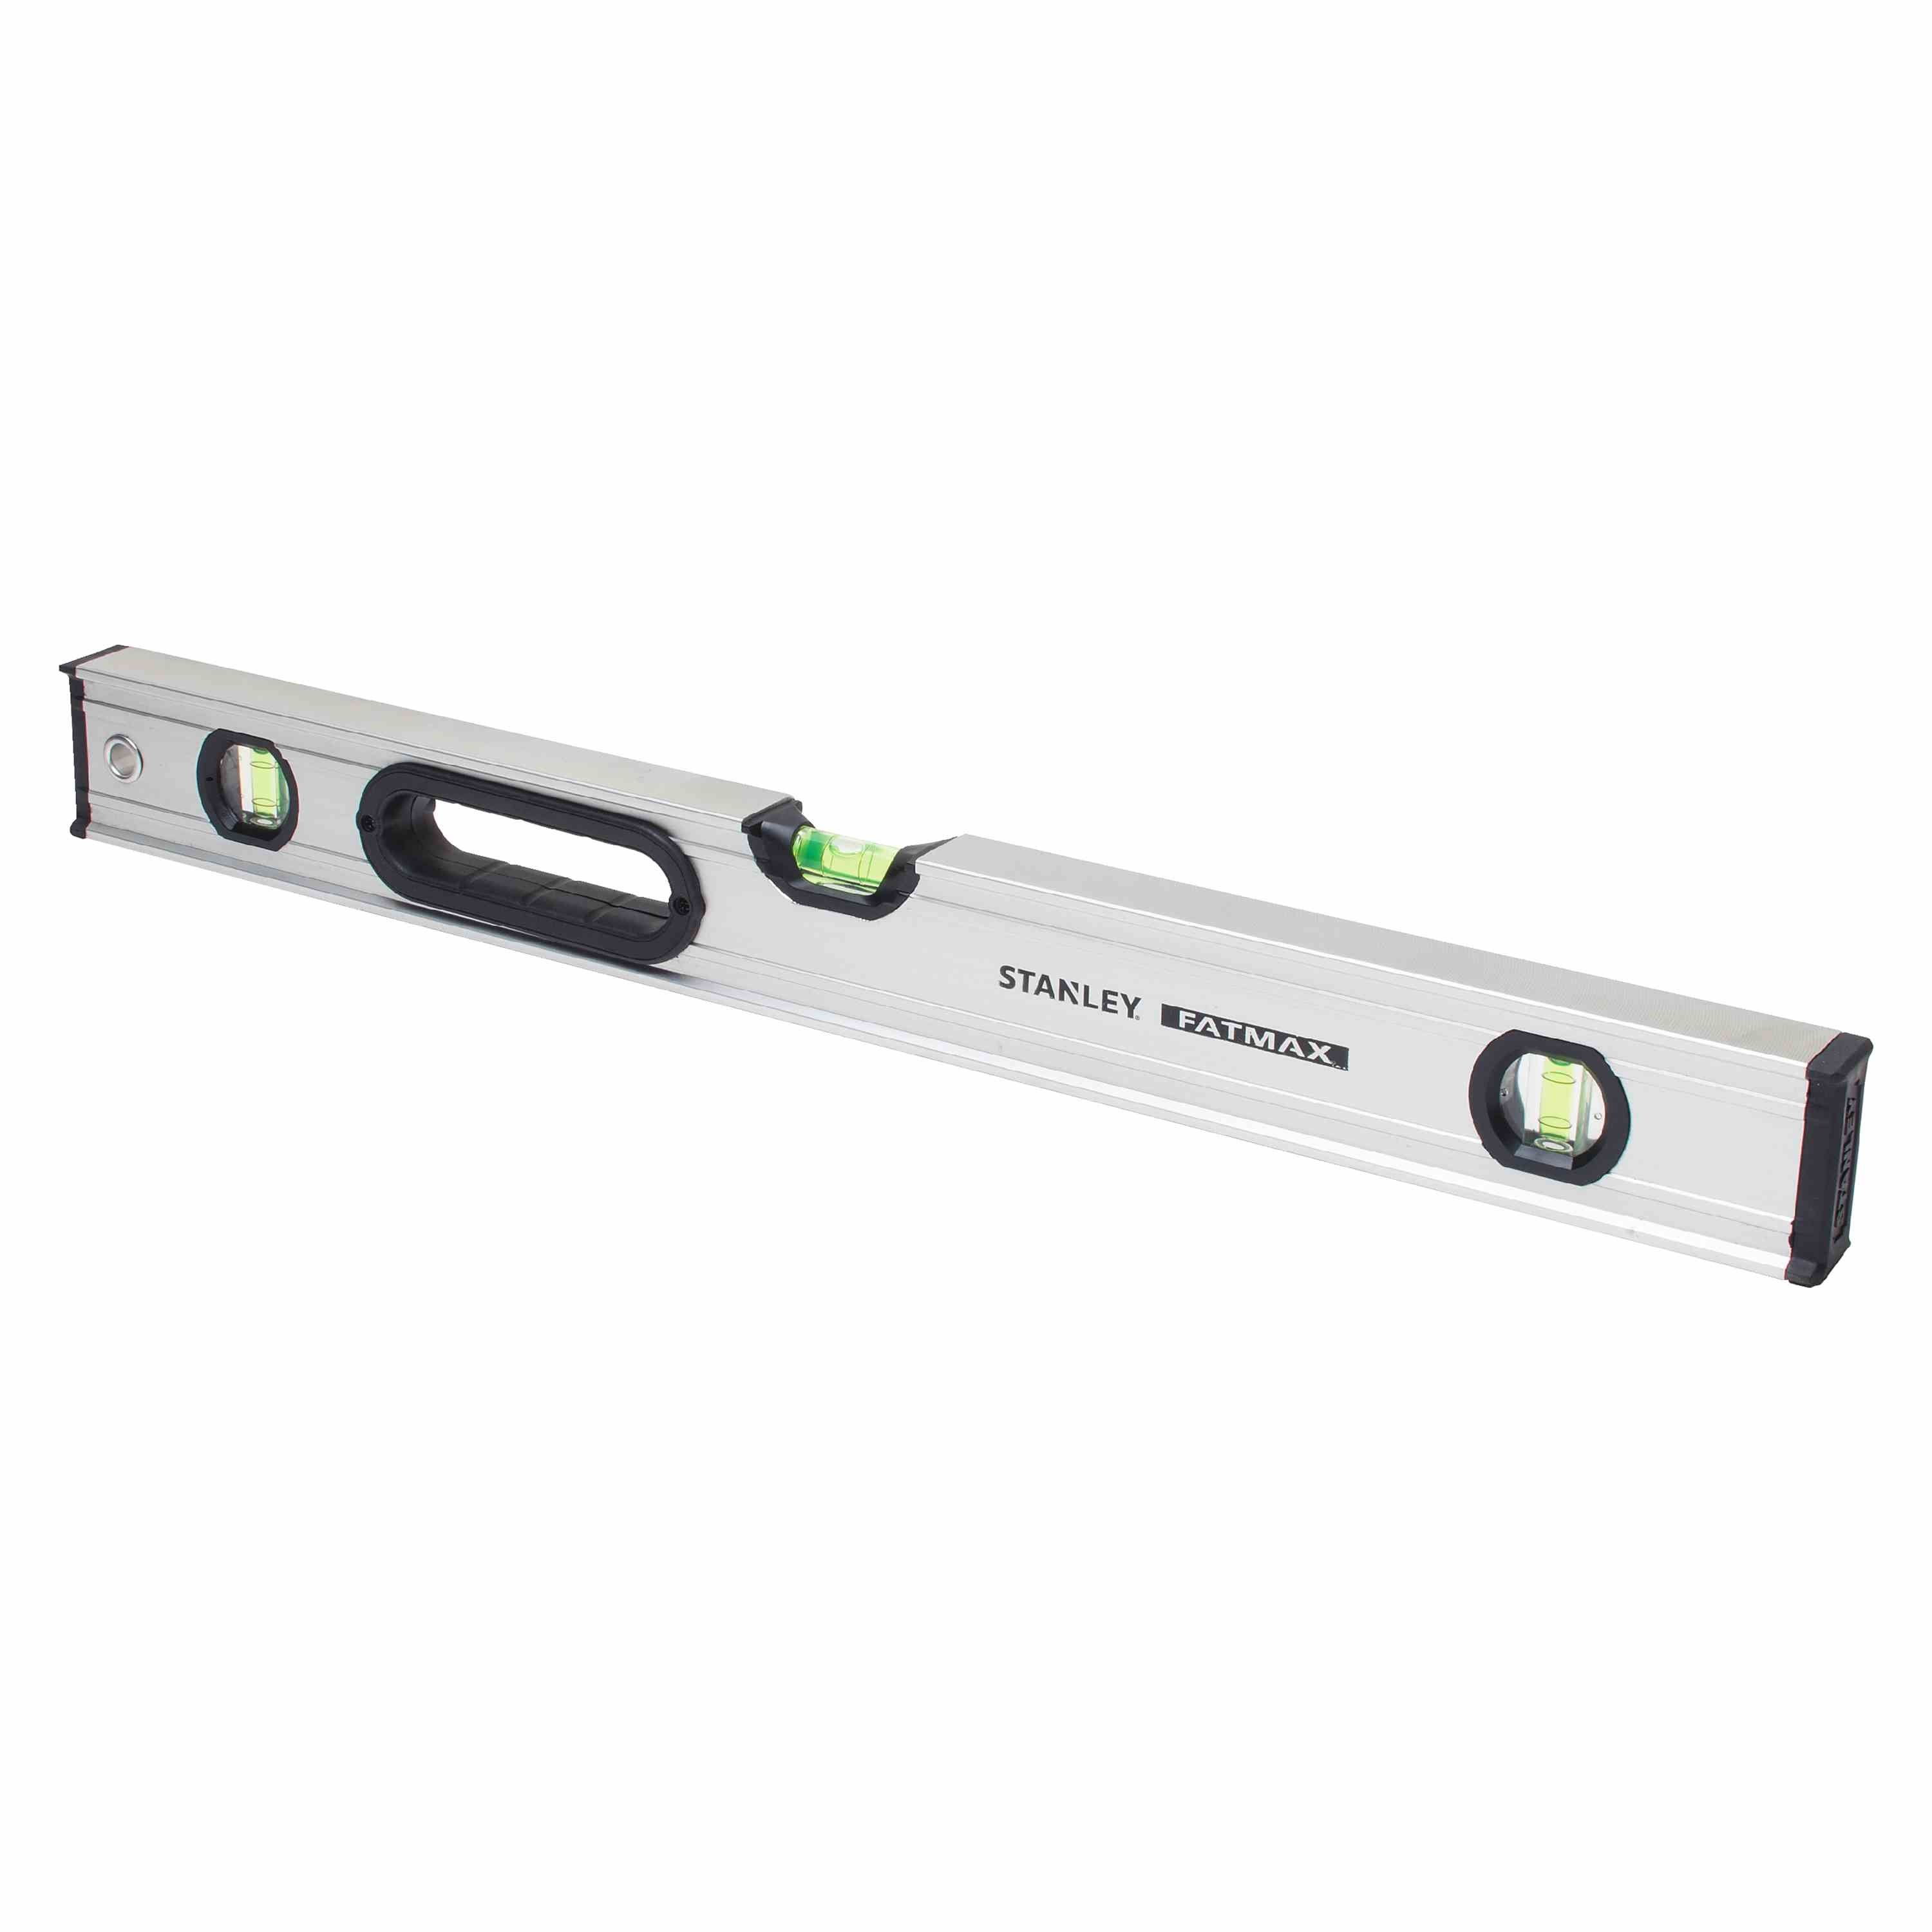 Stanley Tools - 24 in Magnetic FATMAX Box Beam Level - 43-625